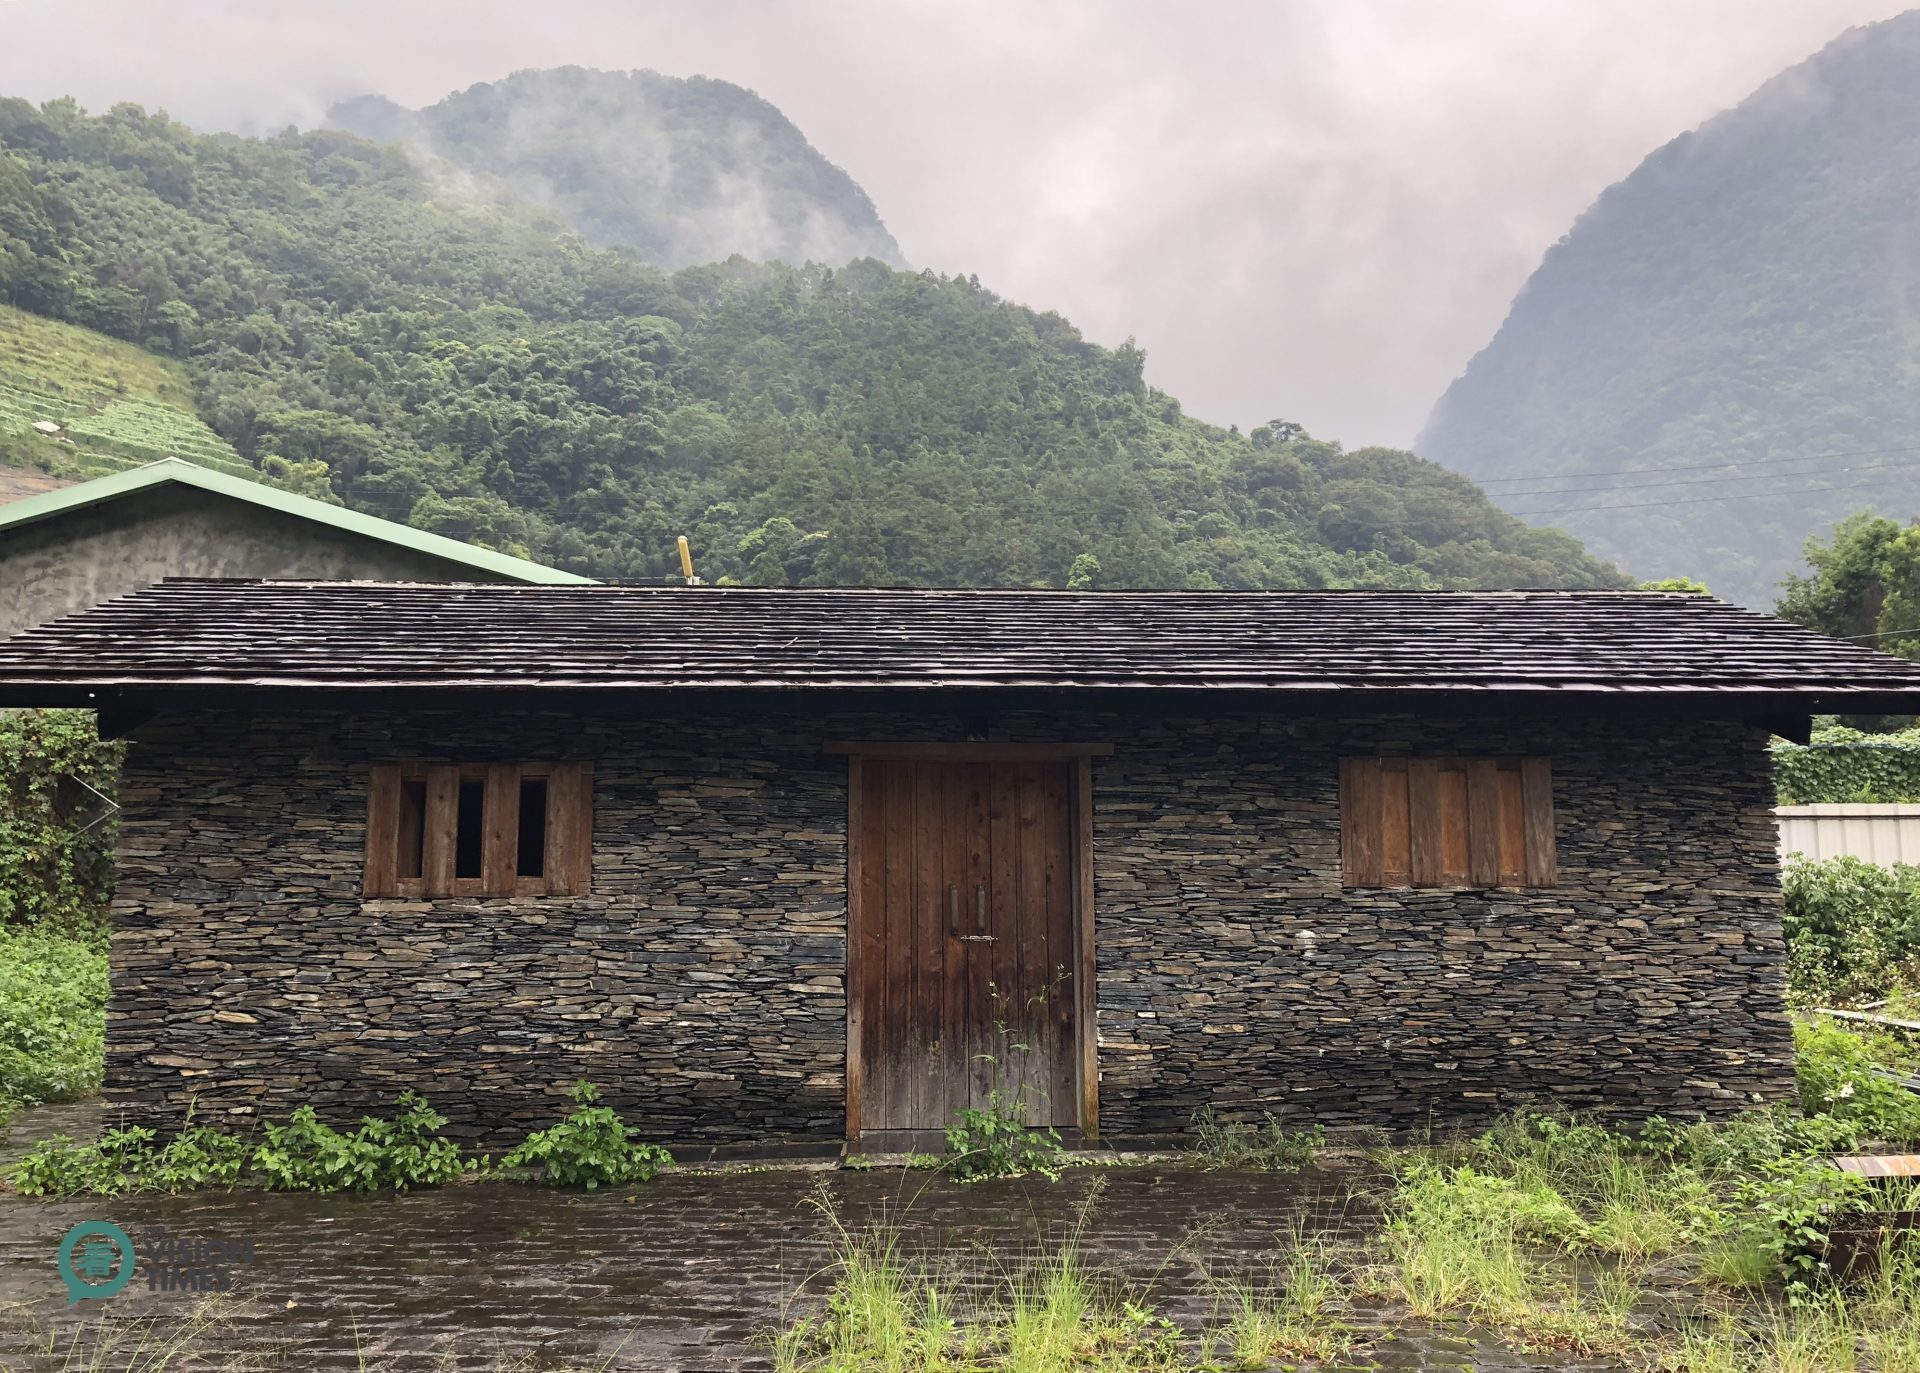 A Bunun tribe's stone slab house in Dongpu Hot Spring Area. (Image: Billy Shyu / Vision Times)